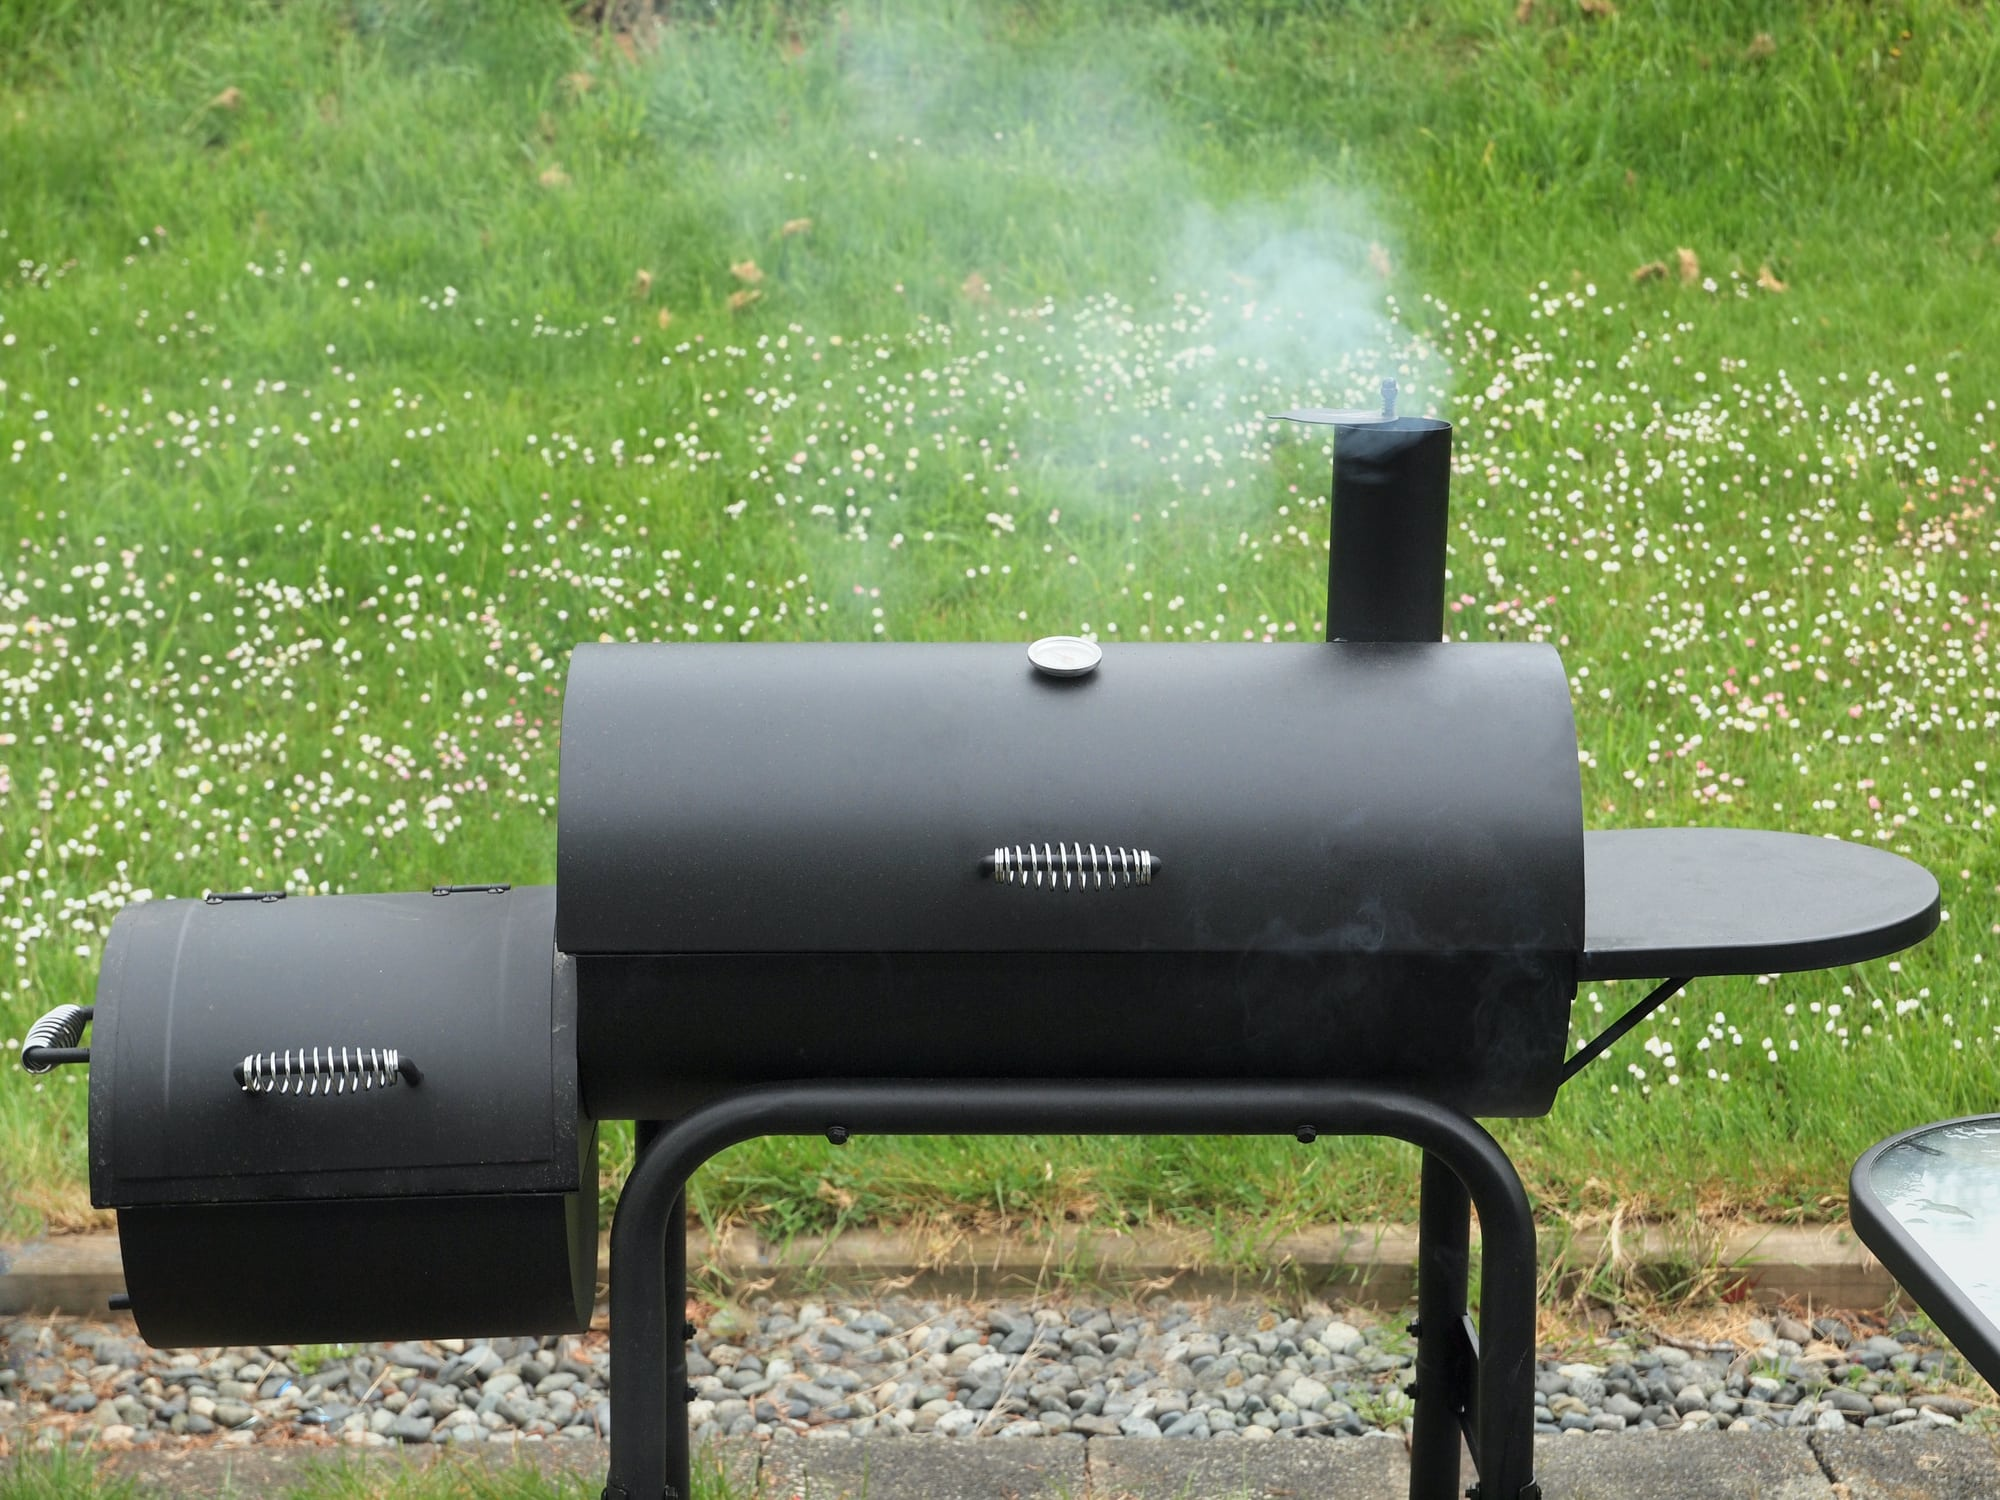 What is an offset smoker?